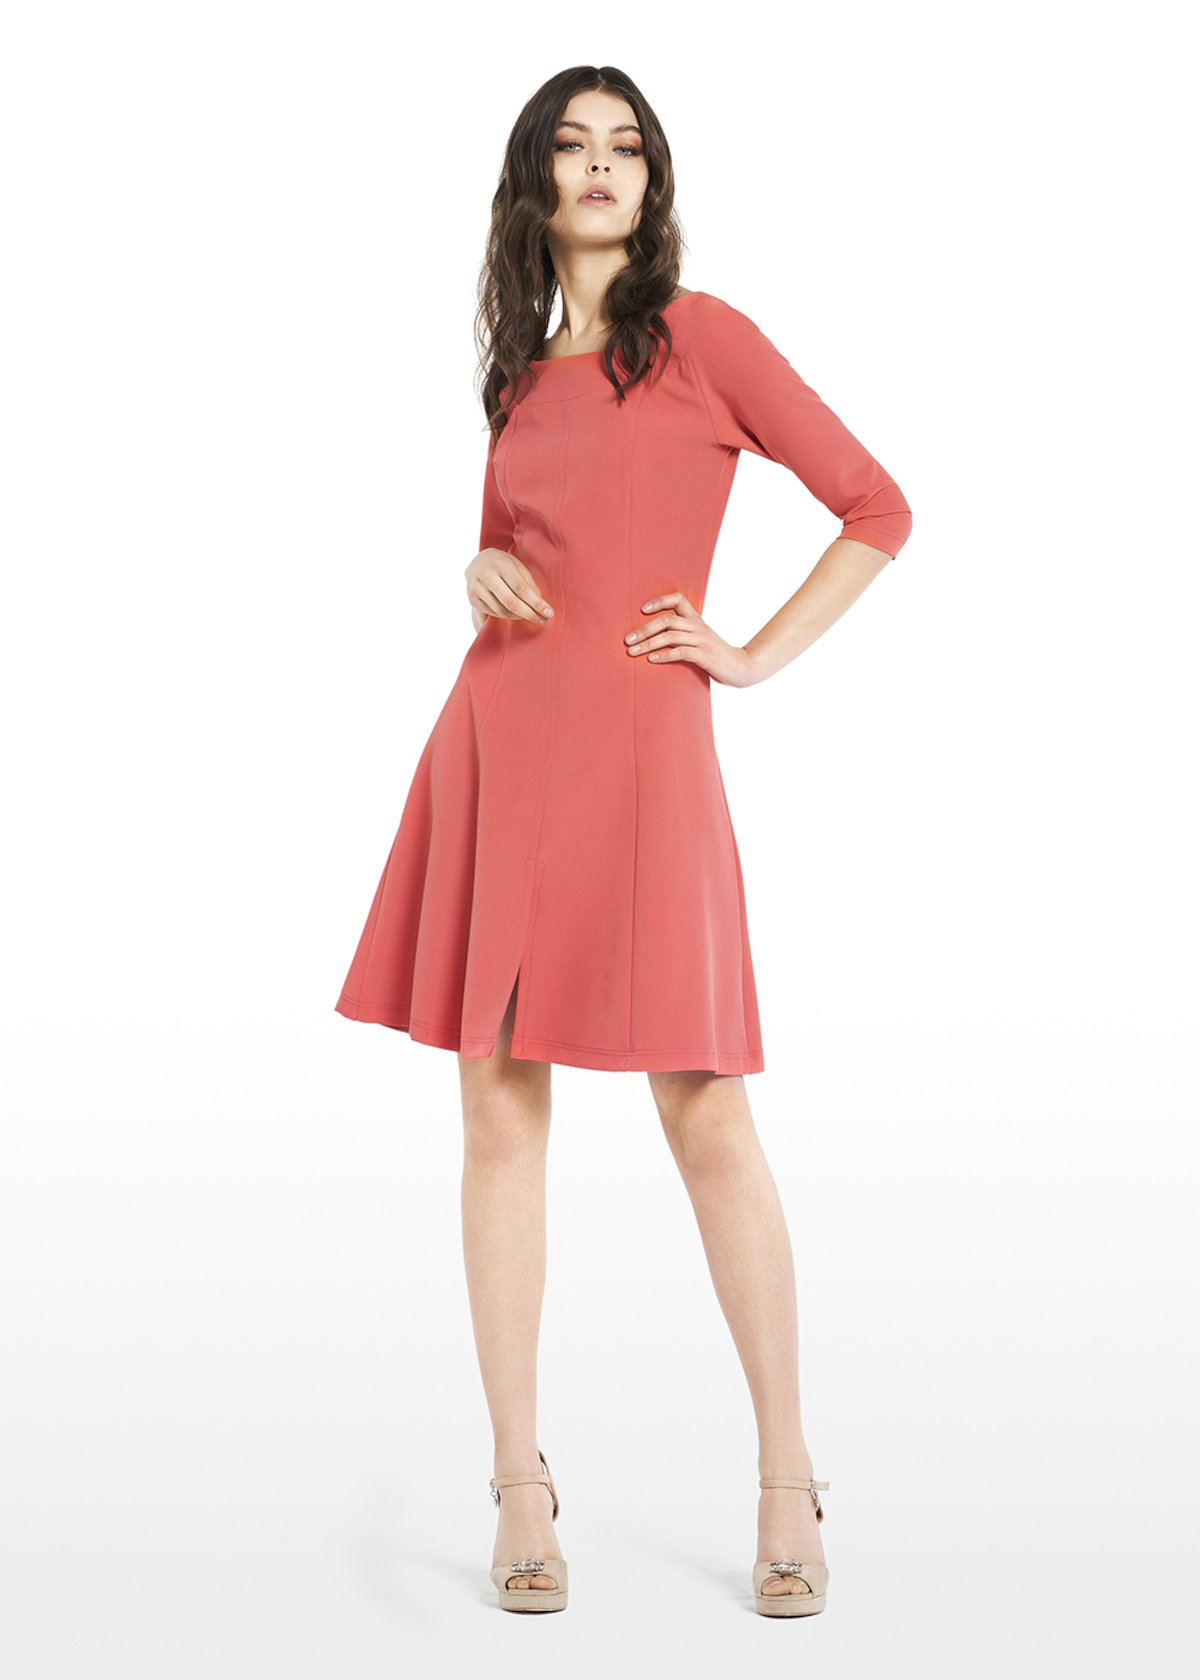 Alessio technical fabric dress with boat neckline - Flamingo - Woman - Category image